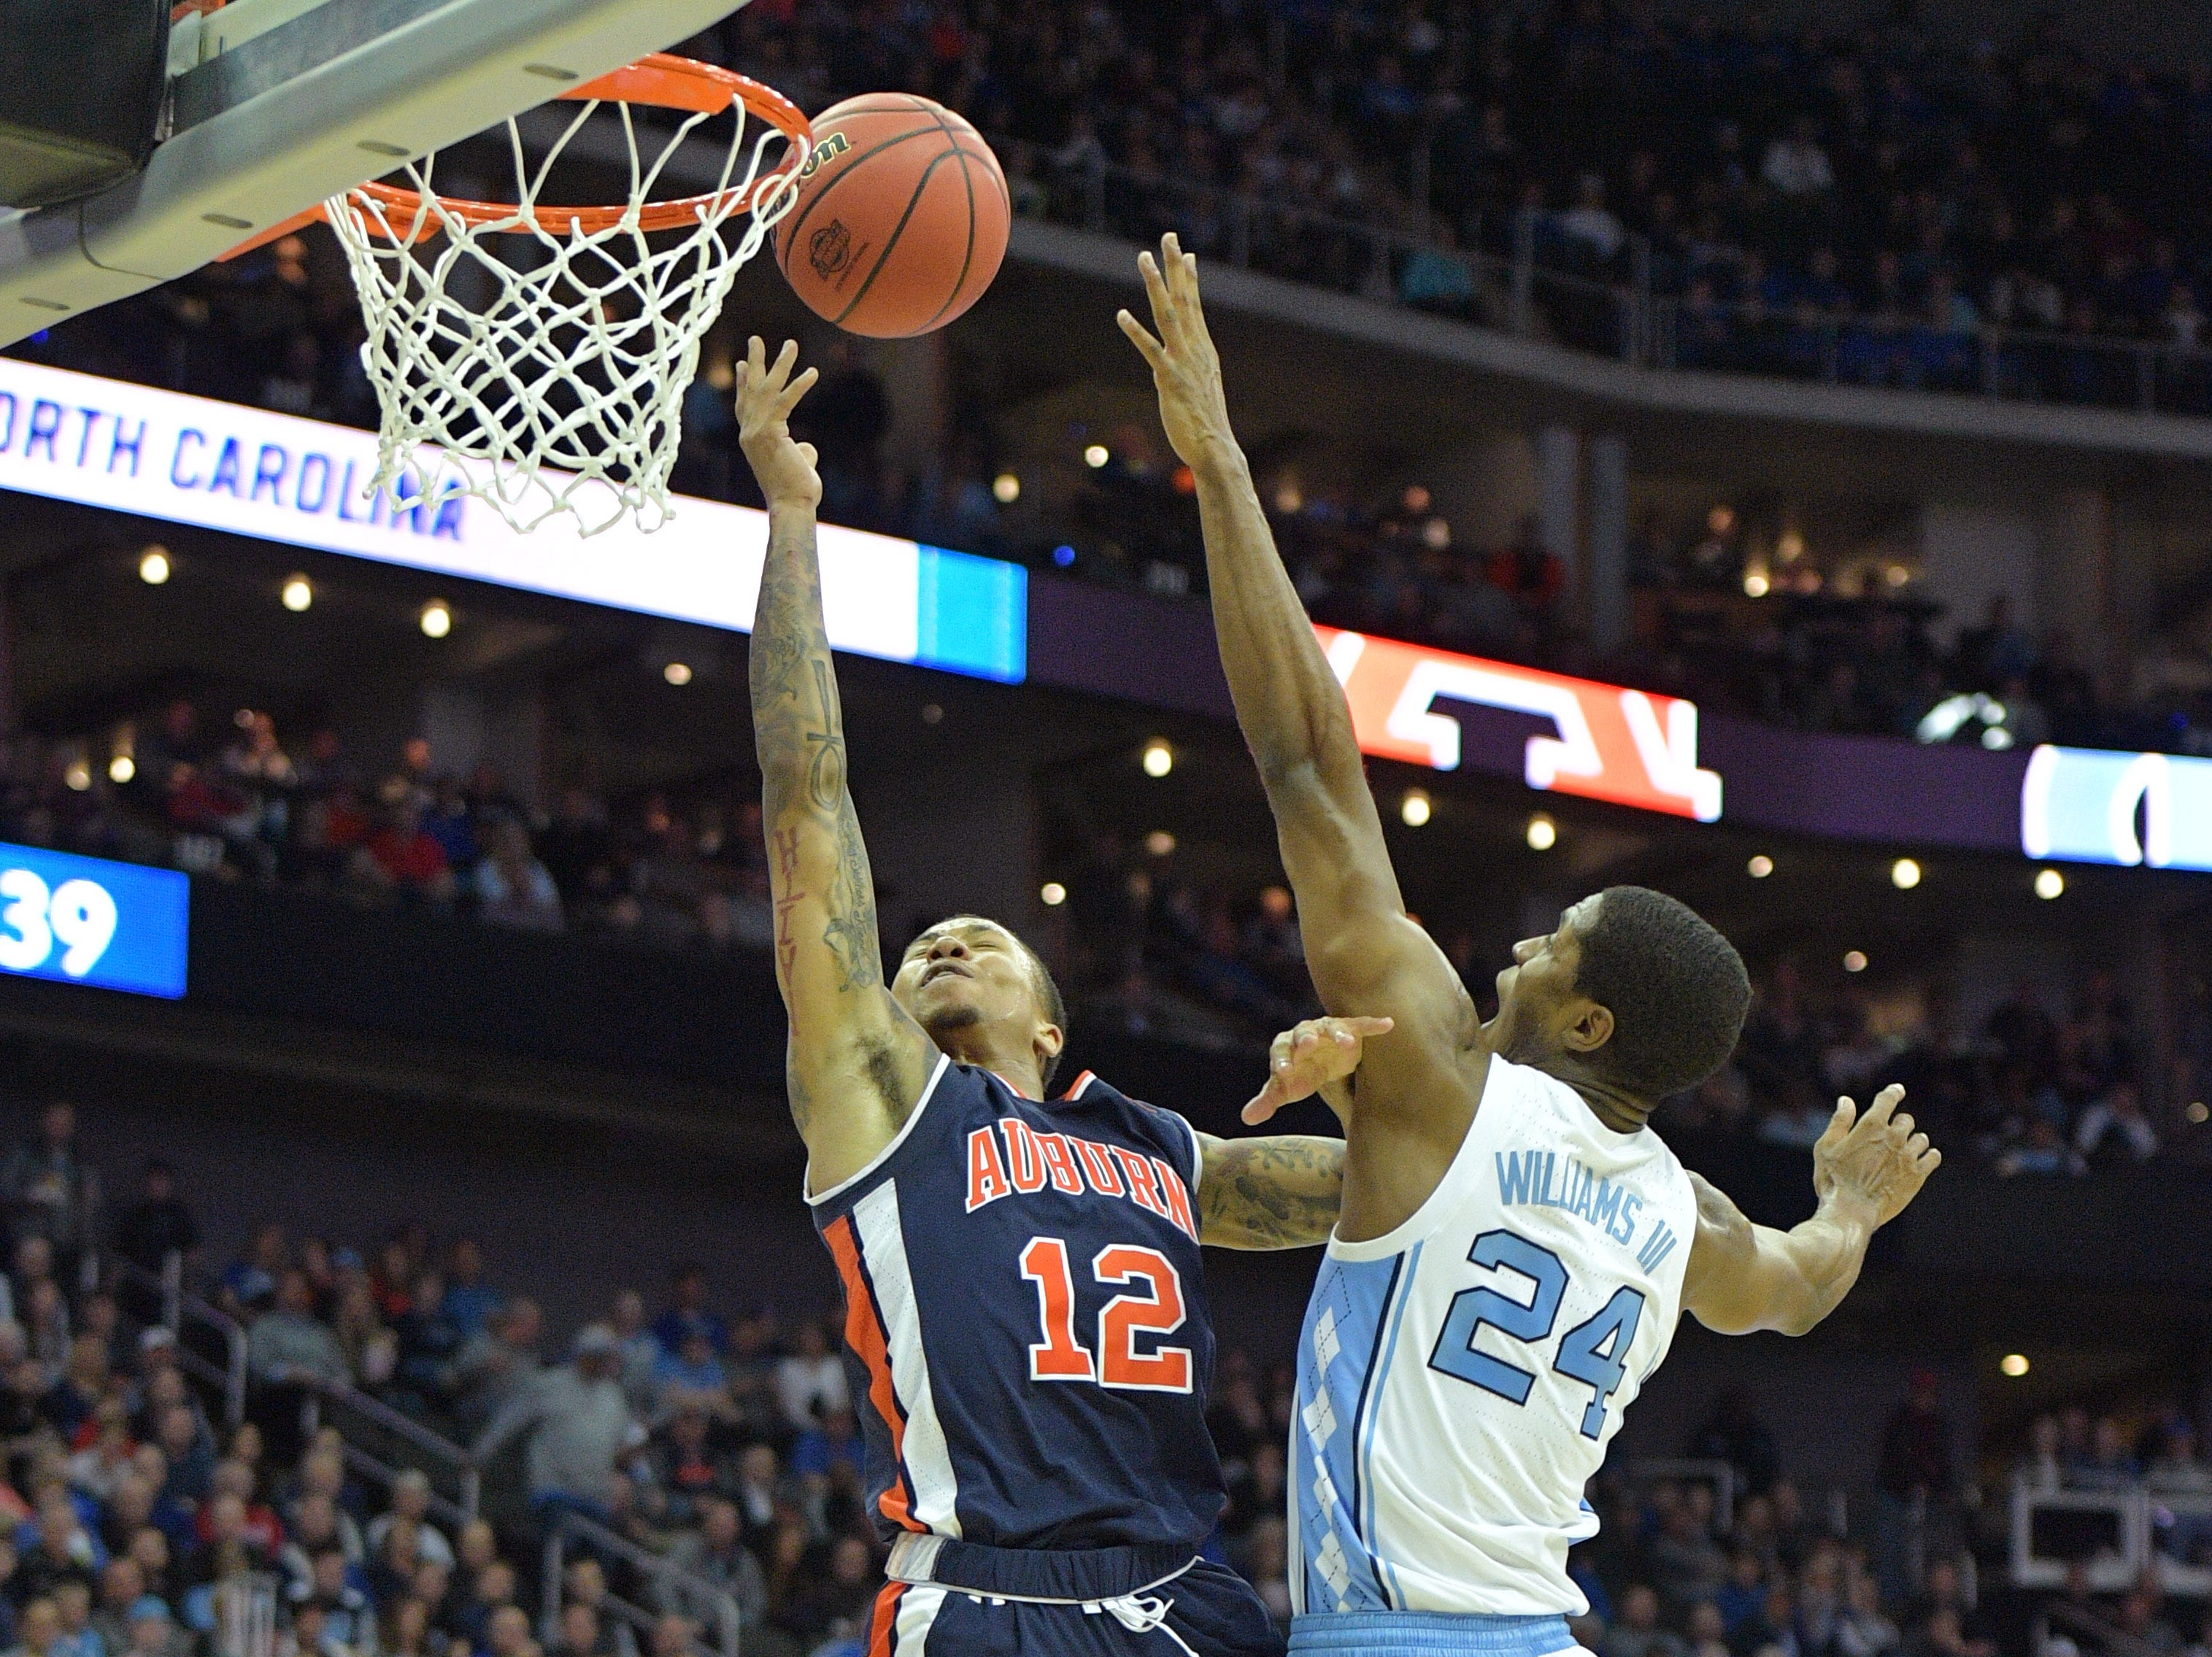 Mar 29, 2019; Kansas City, MO, United States; Auburn Tigers guard J'Von McCormick (12) shoots against North Carolina Tar Heels guard Kenny Williams (24) during the first half in the semifinals of the midwest regional of the 2019 NCAA Tournament at Sprint Center. Mandatory Credit: Denny Medley-USA TODAY Sports